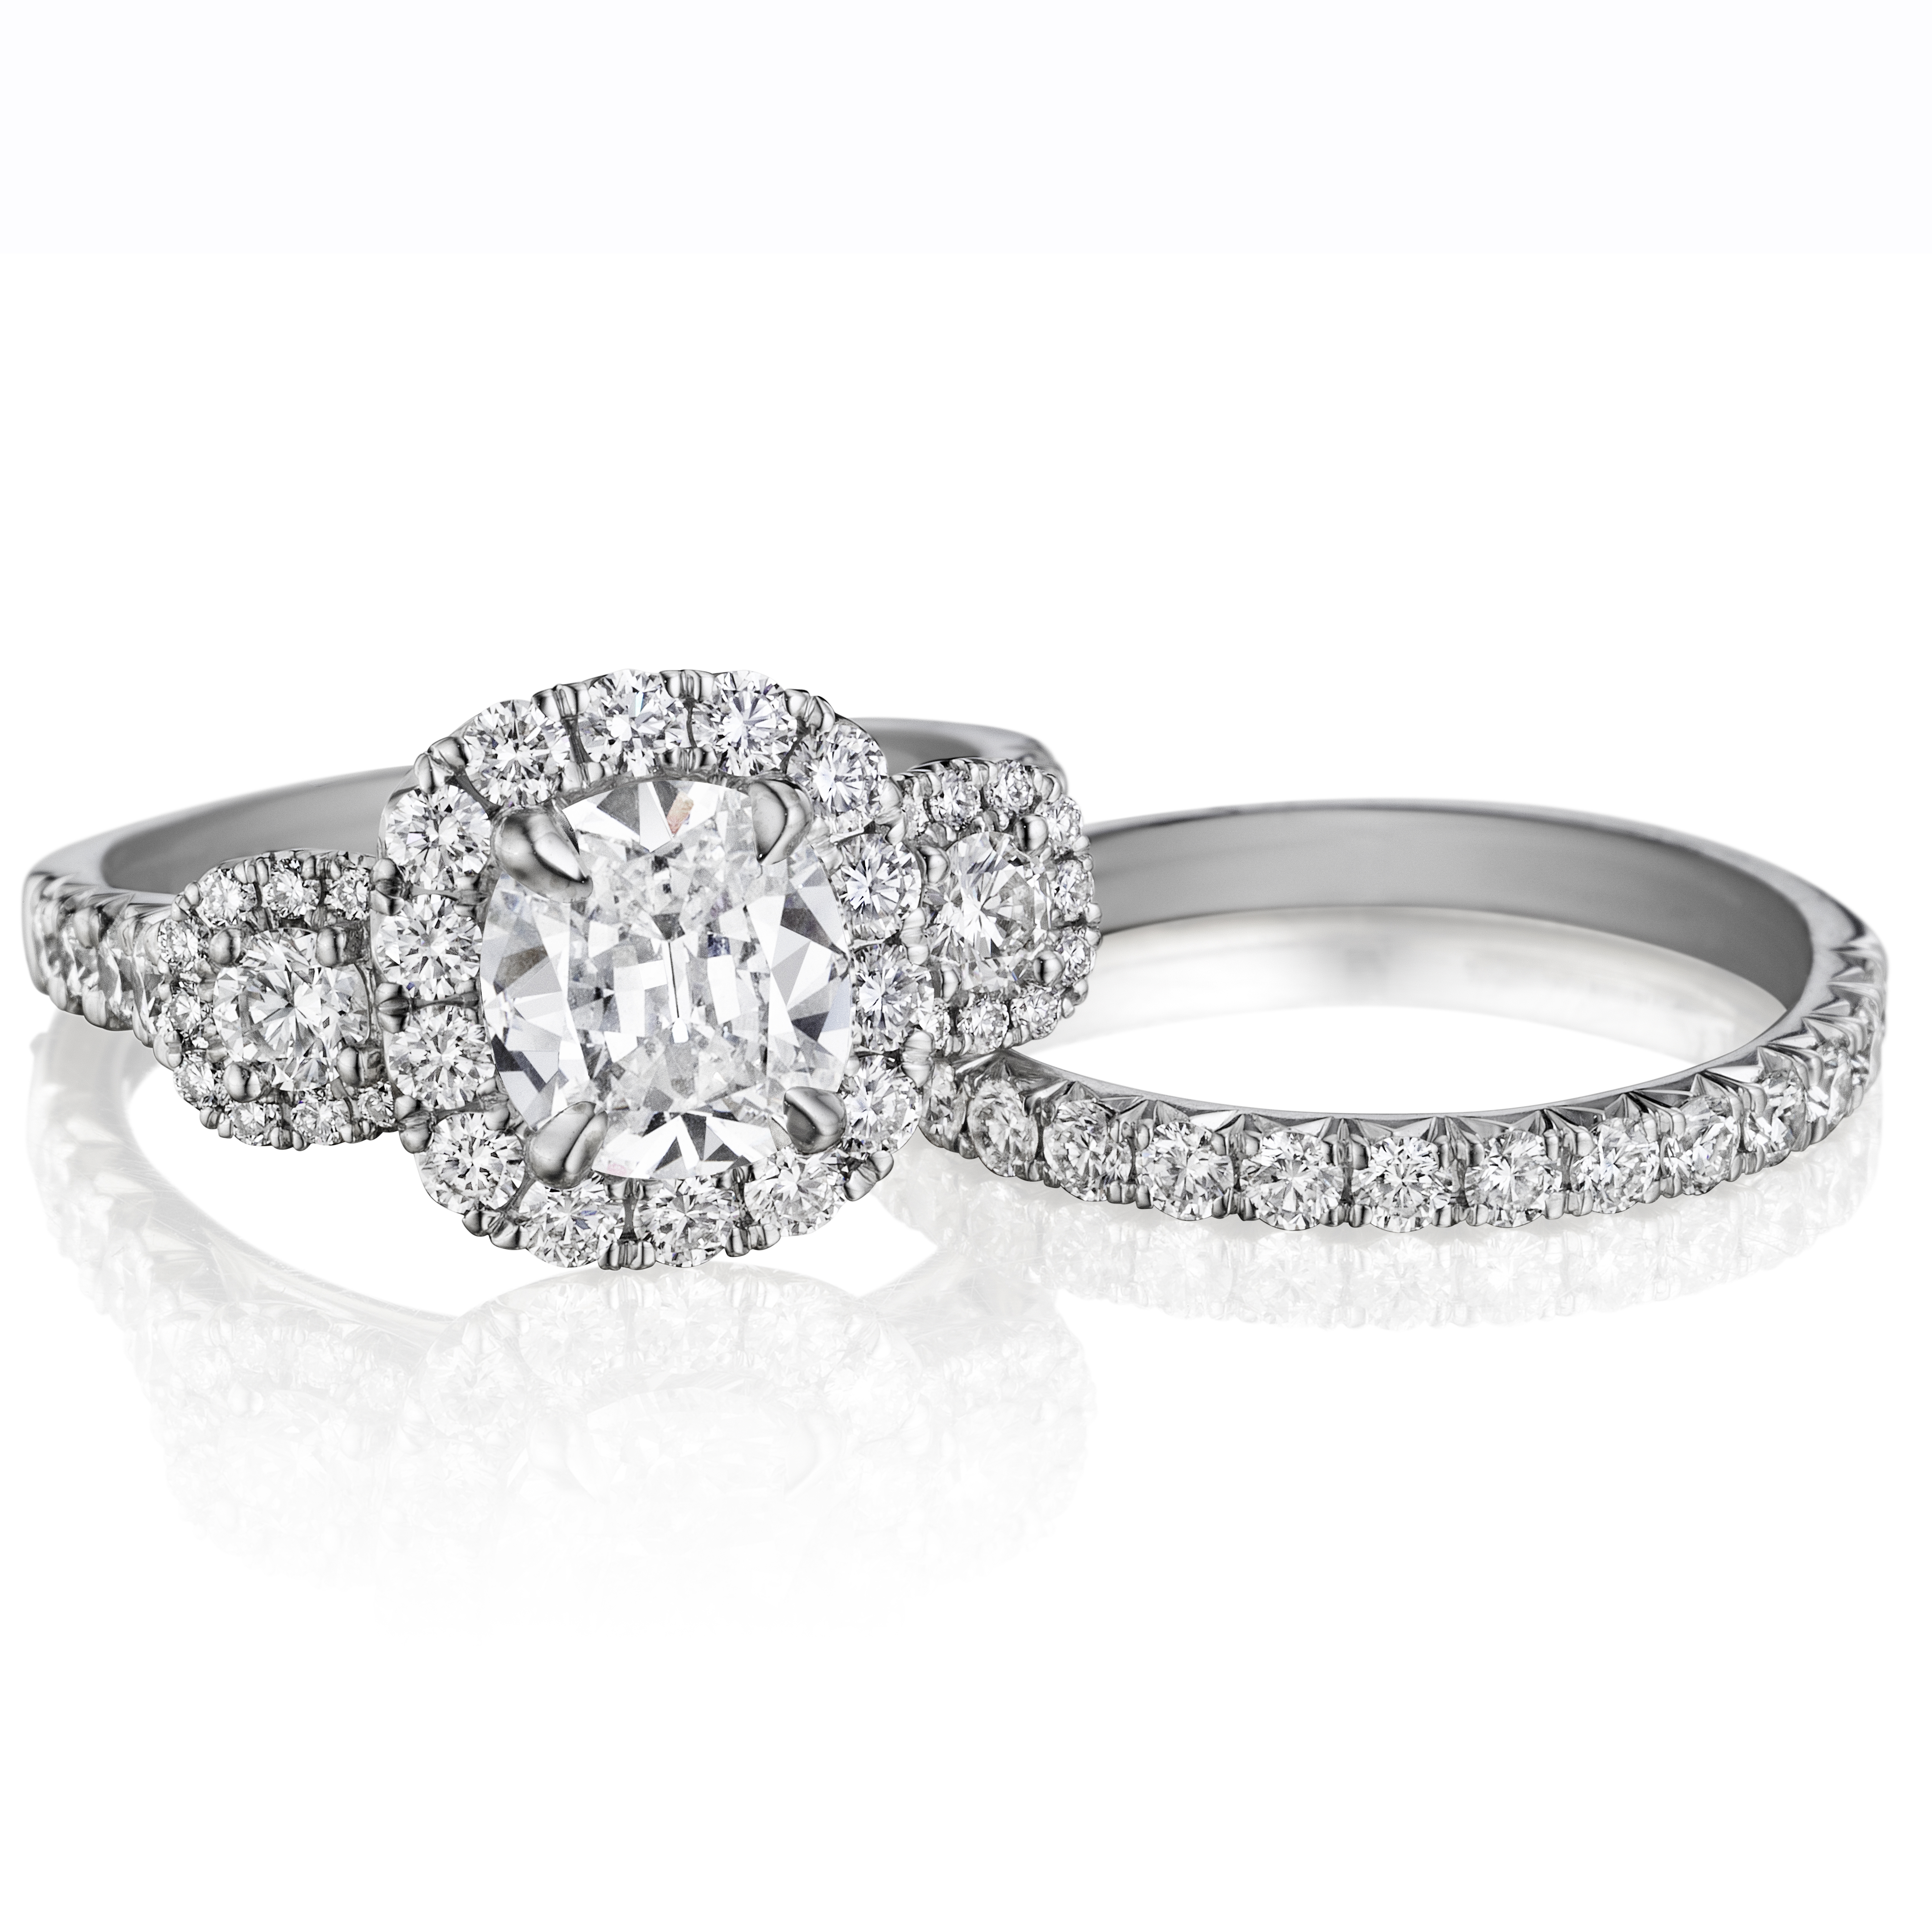 Bridal Henri Daussi Diamond Engagement Rings and Wedding Bands